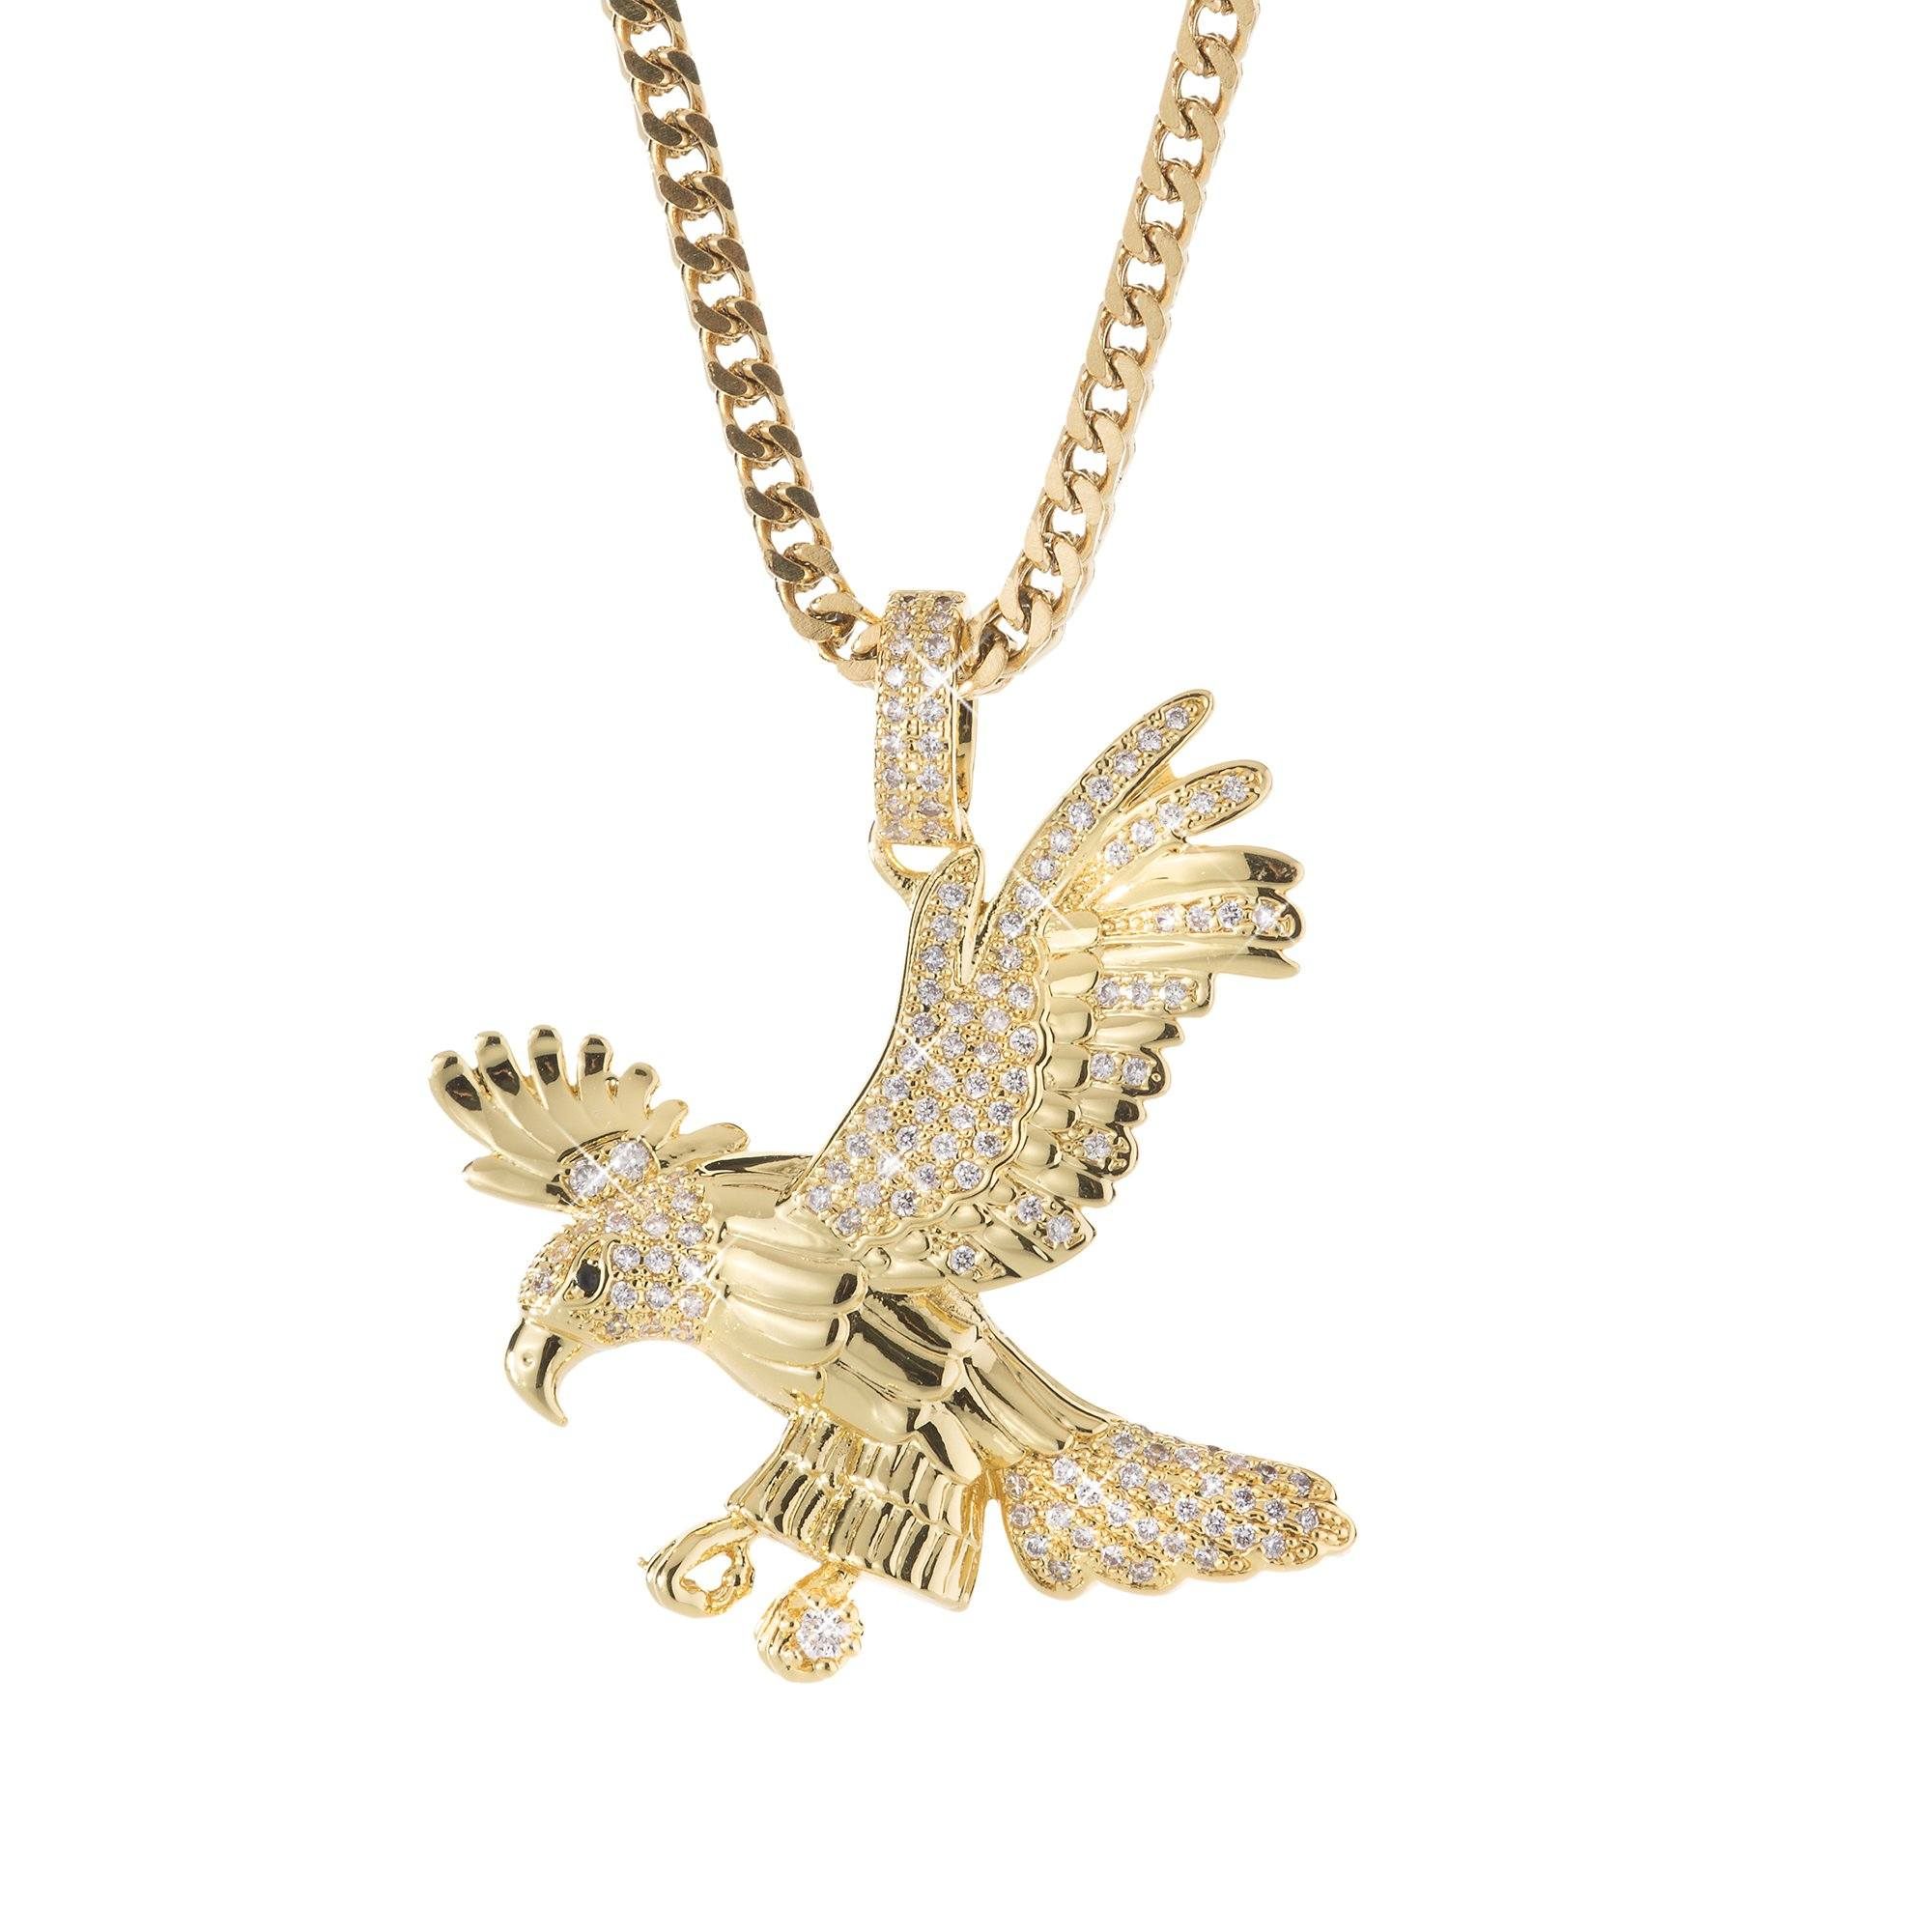 Gold eagle pendant spicyice necklace gold eagle pendant aloadofball Images